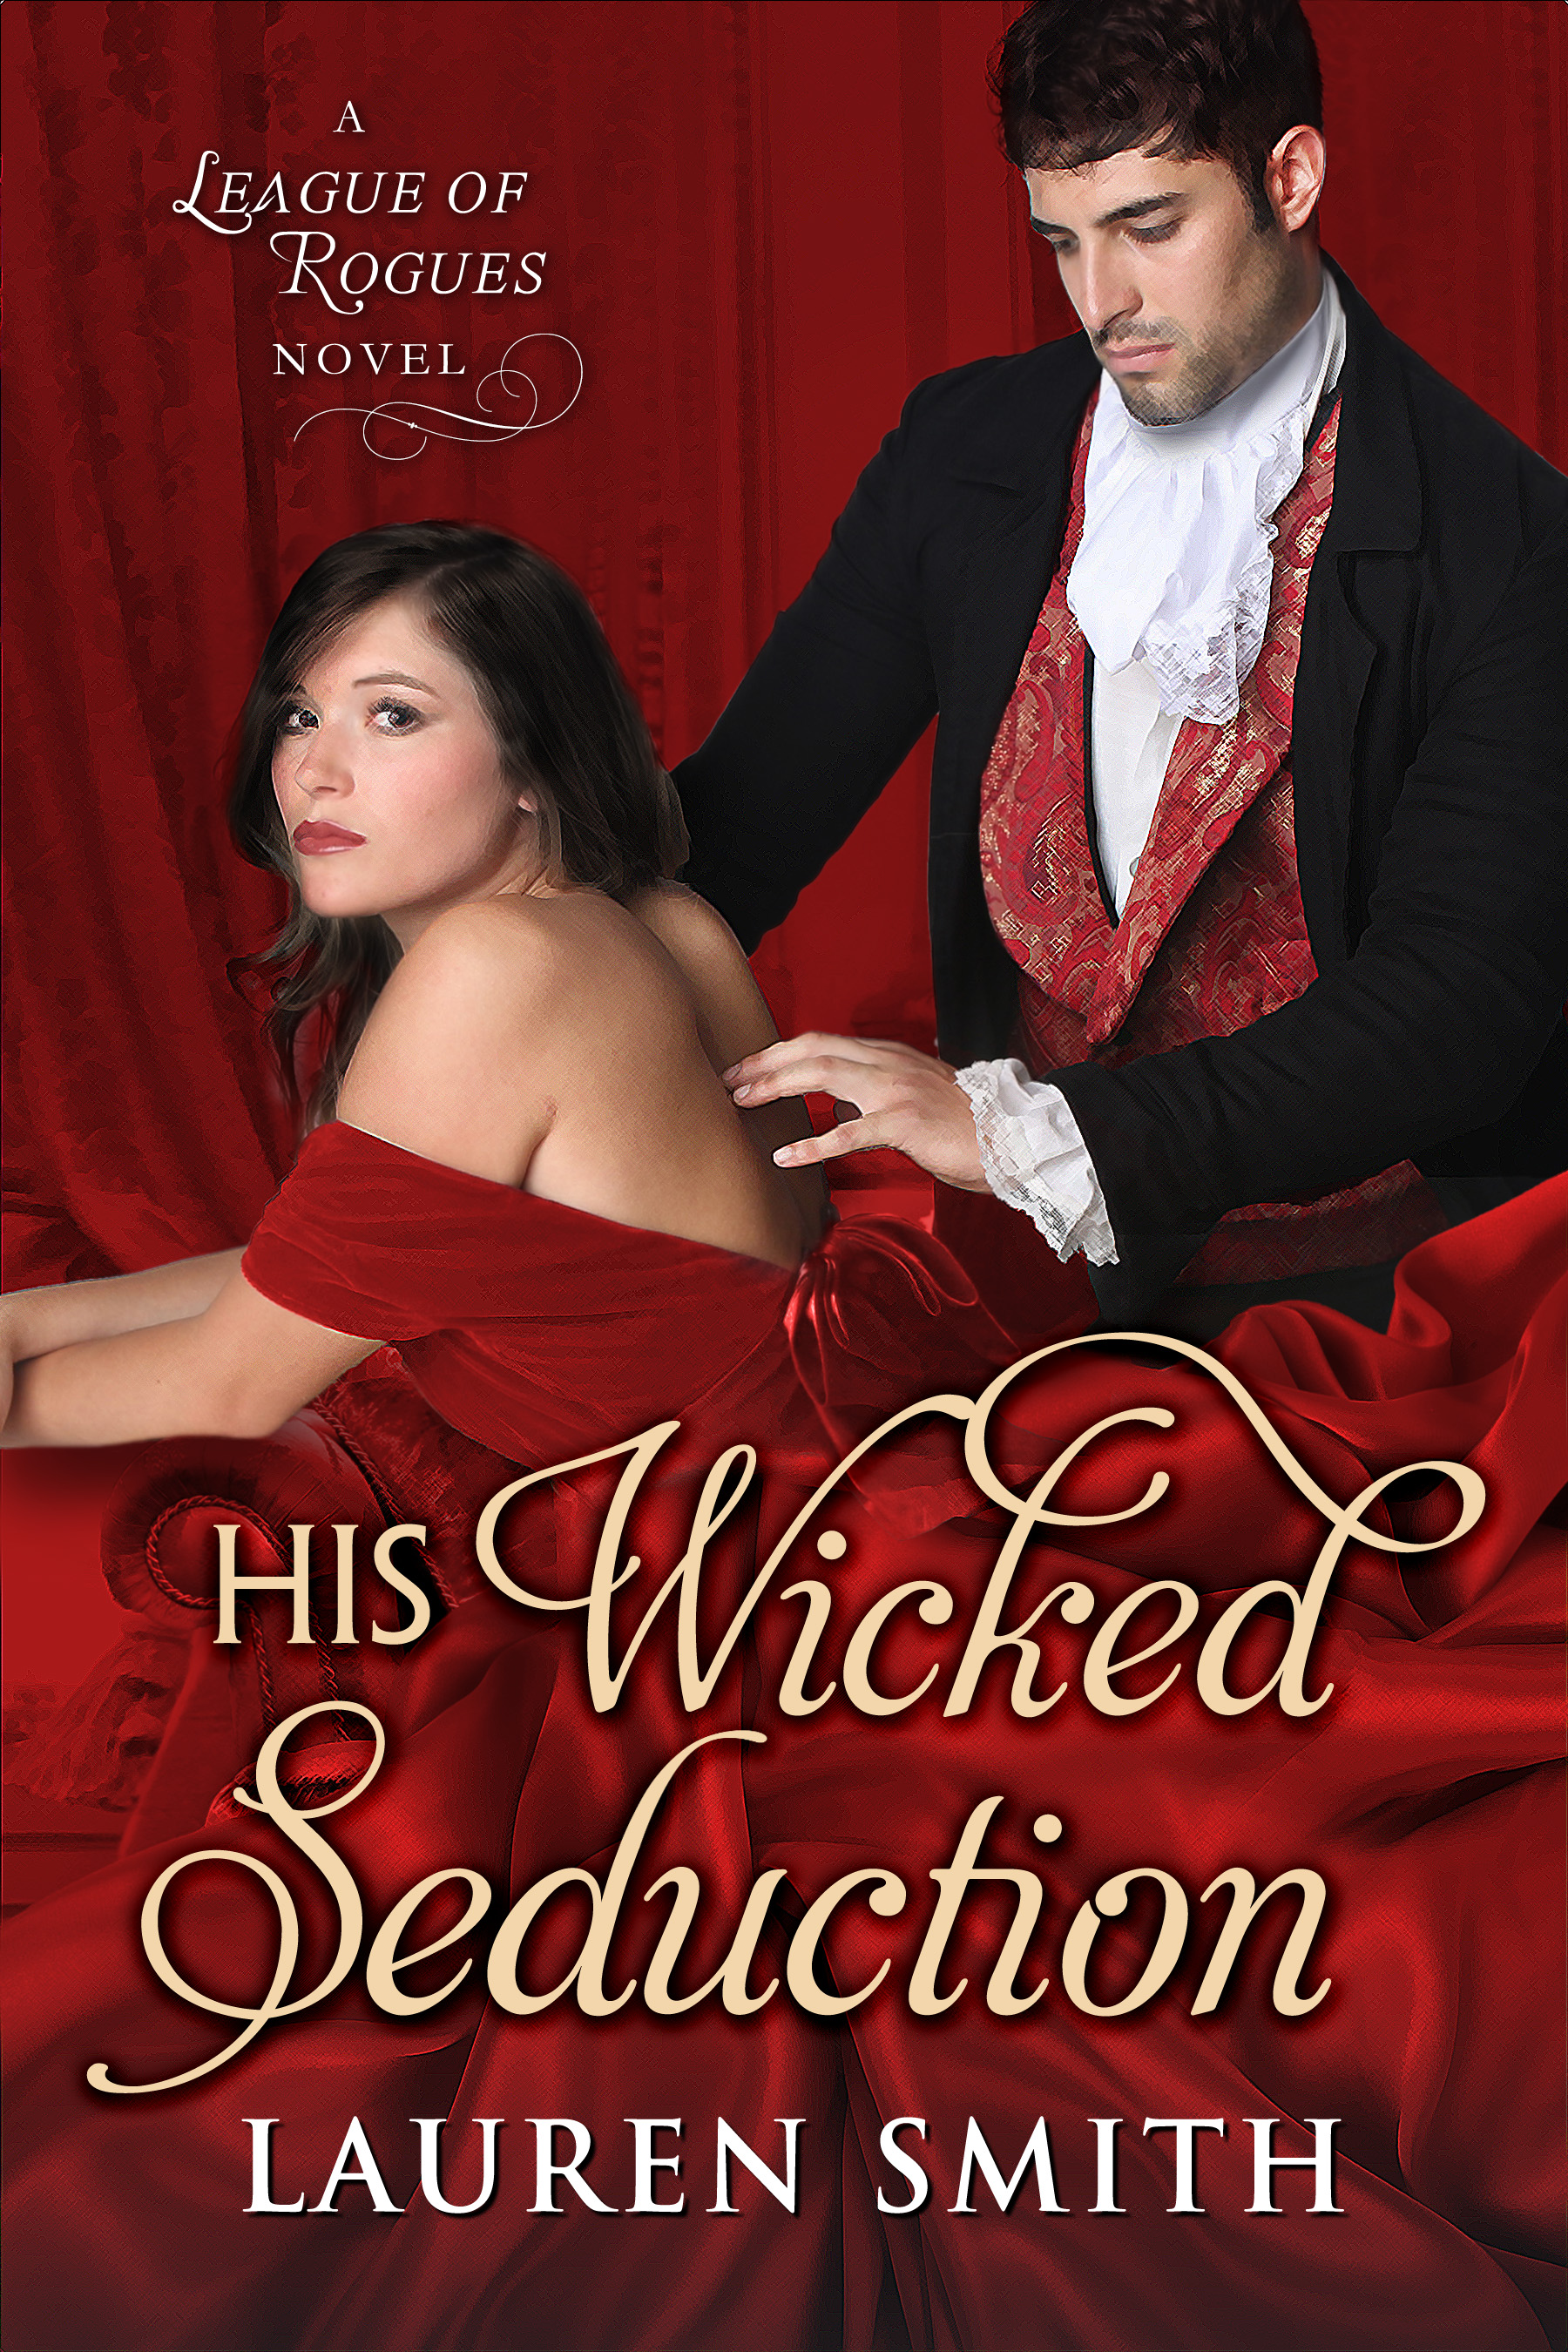 His Wicked Seduction